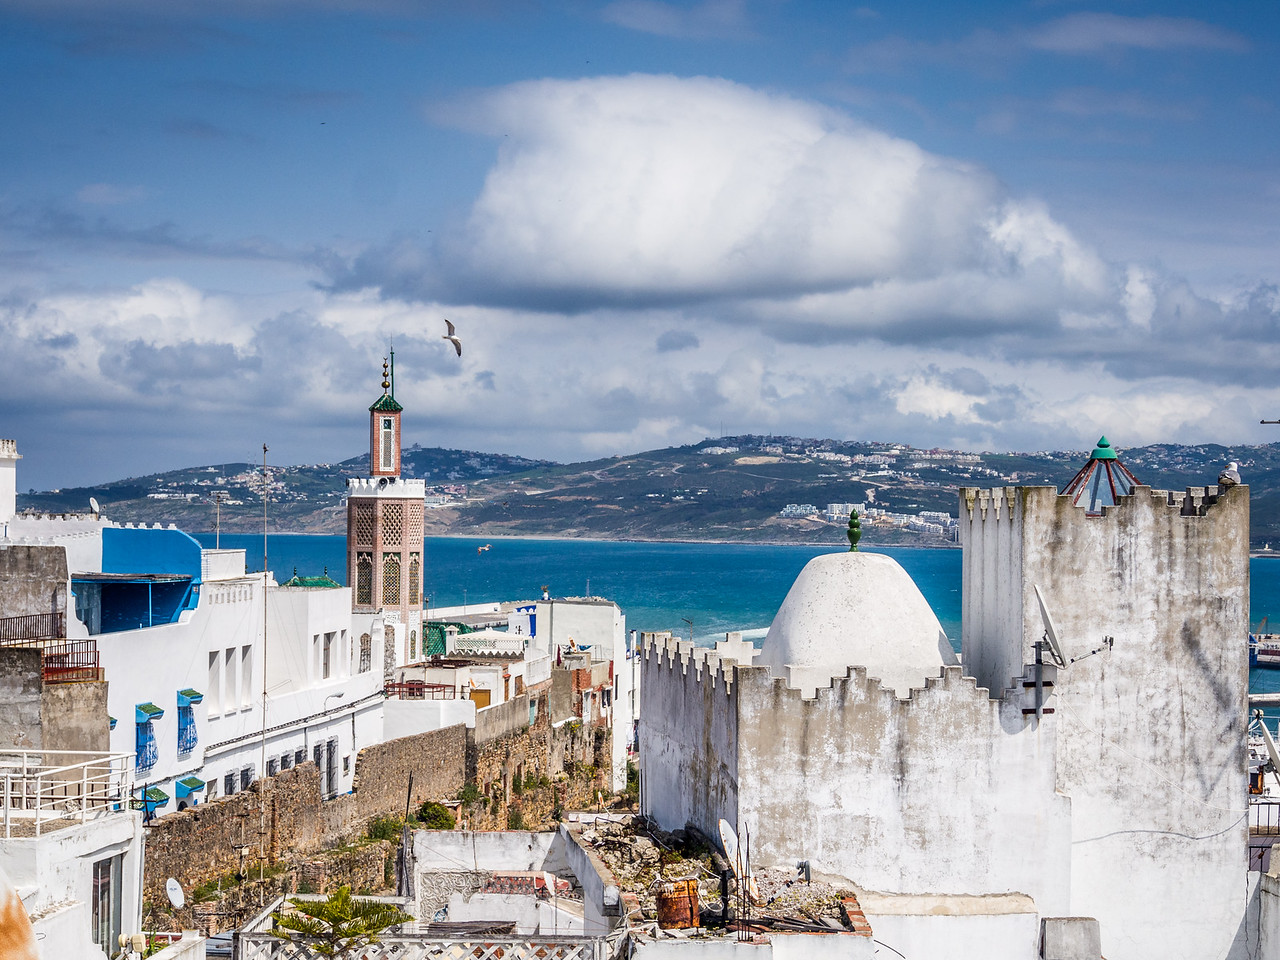 Mosques and the Bay, Tangiers